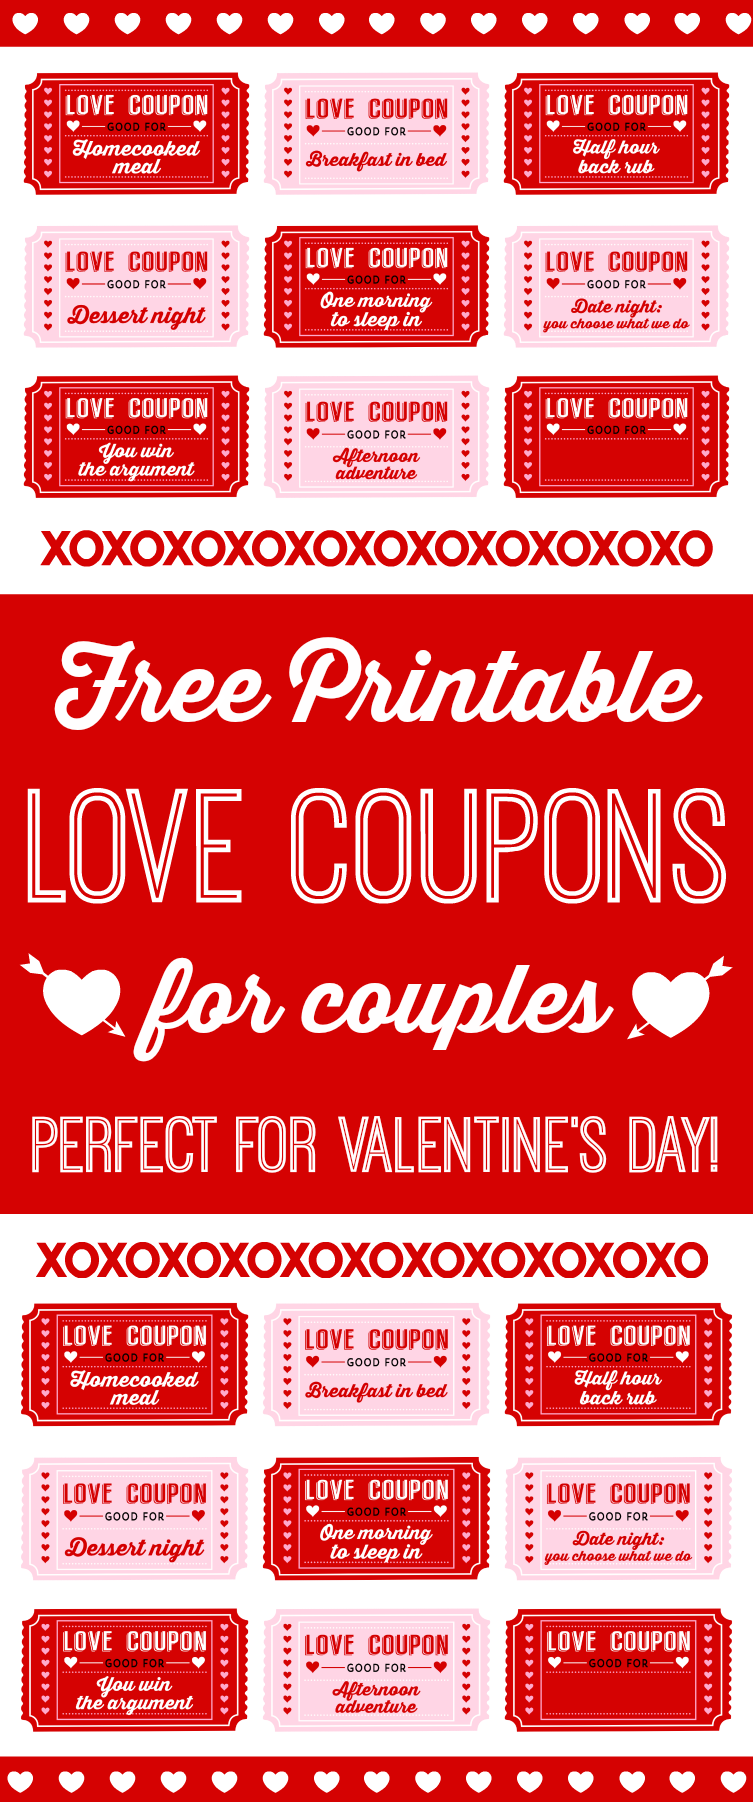 Love coupons are little IOU's that your loved one can cash-in the next time they're in the mood for a romantic, fun, or even sexy experience! For example, say your boyfriend or girlfriend loves back massages - give them a